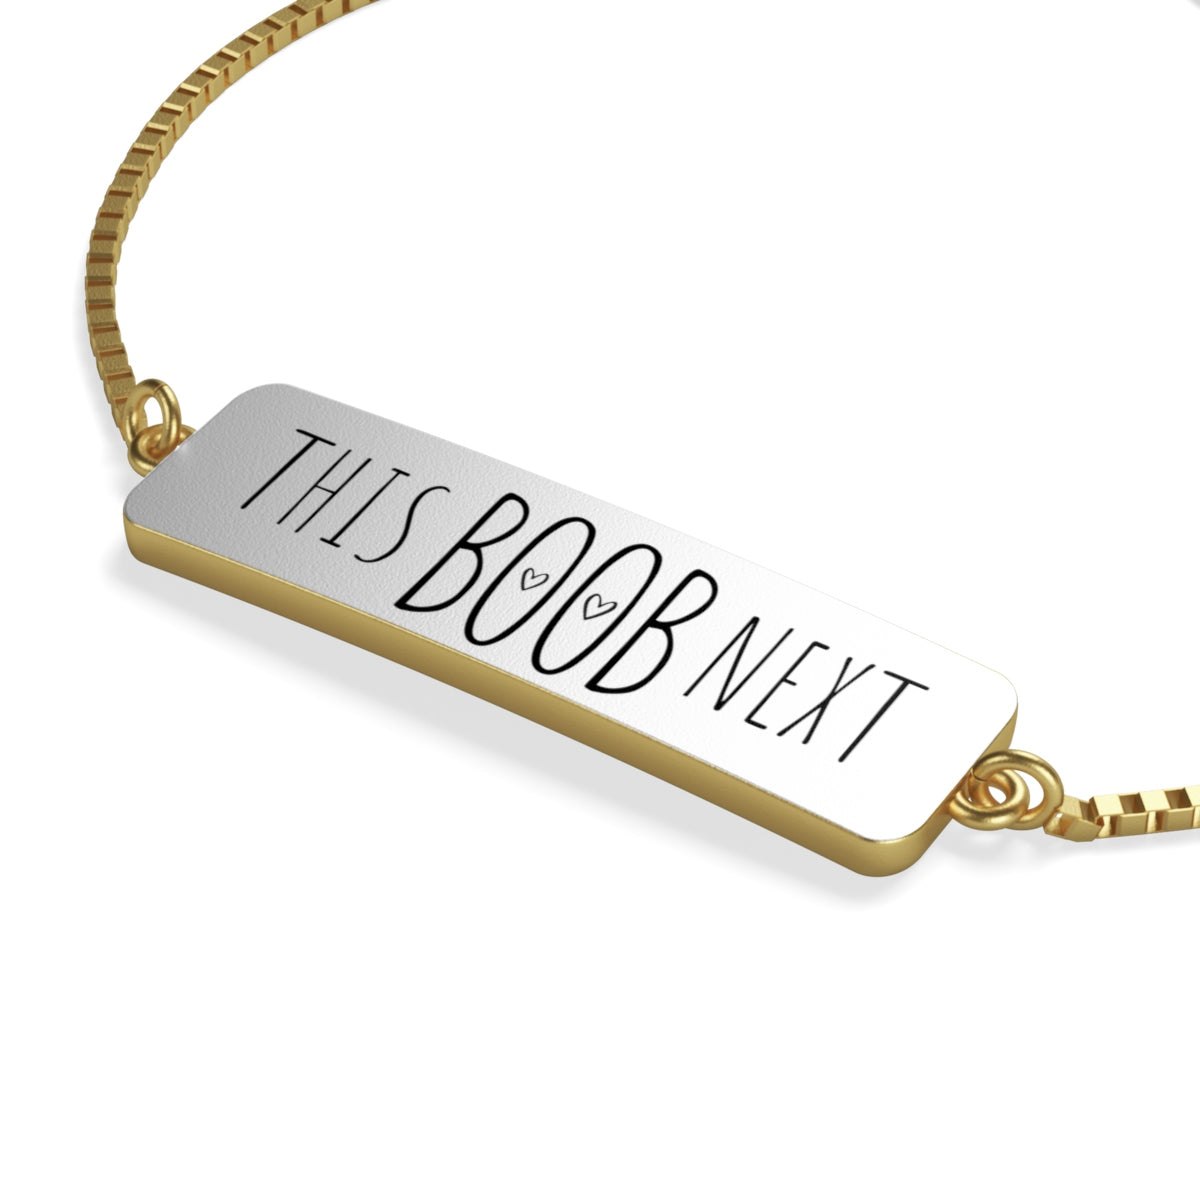 Breastfeeding reminder bracelet in gold with a rectangle pendant shape and sliding closure.